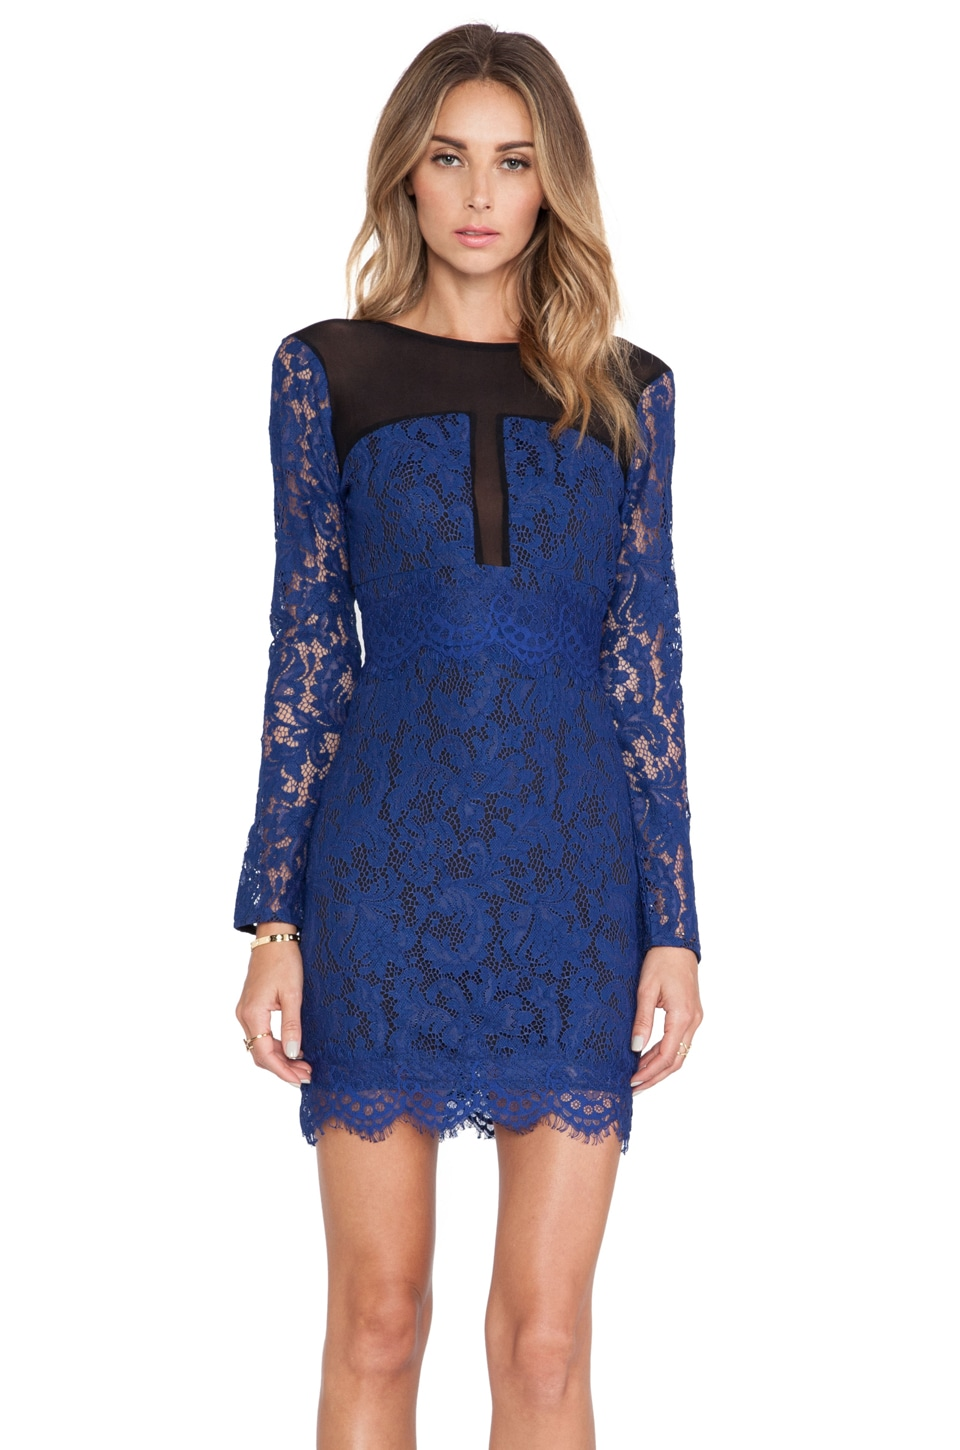 NBD Girls Night Out Dress in Navy